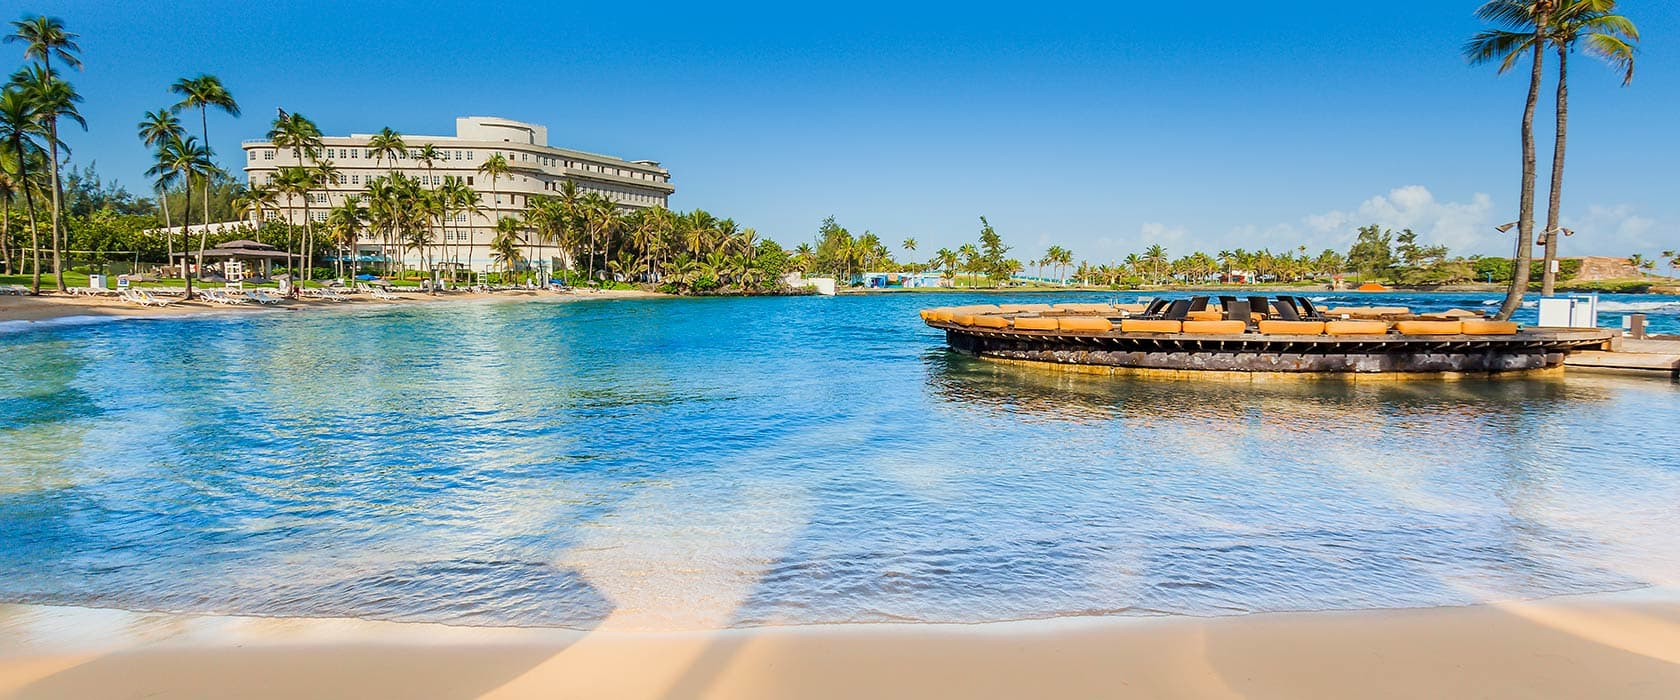 Special Offers - Caribe Hilton, San Juan Offers